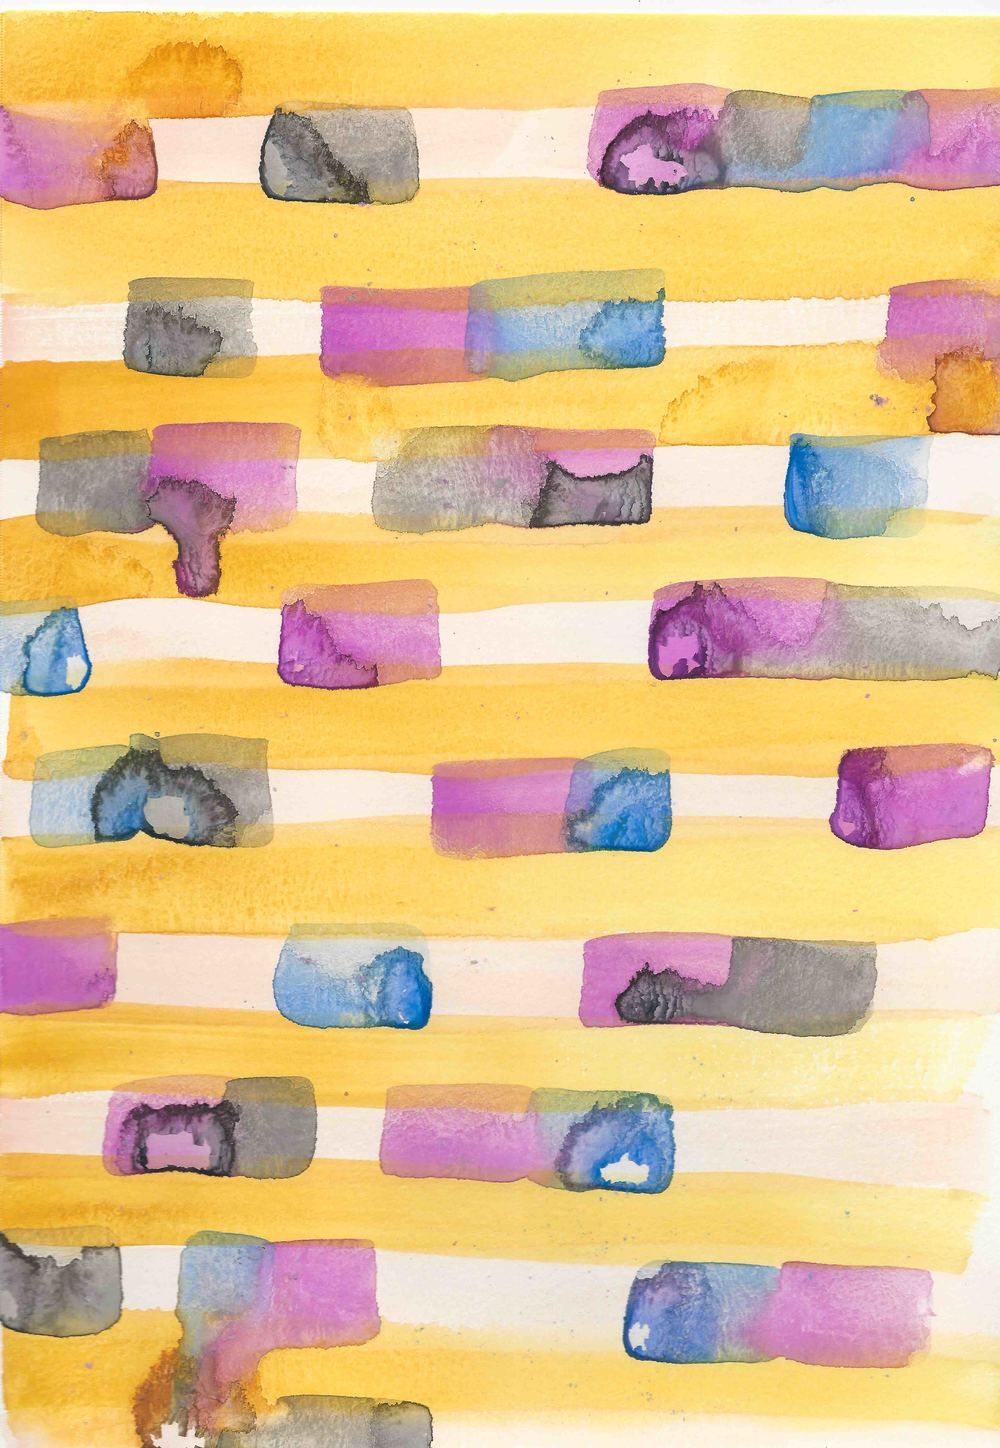 watercolor stripes and squares  7x10 paper.jpg